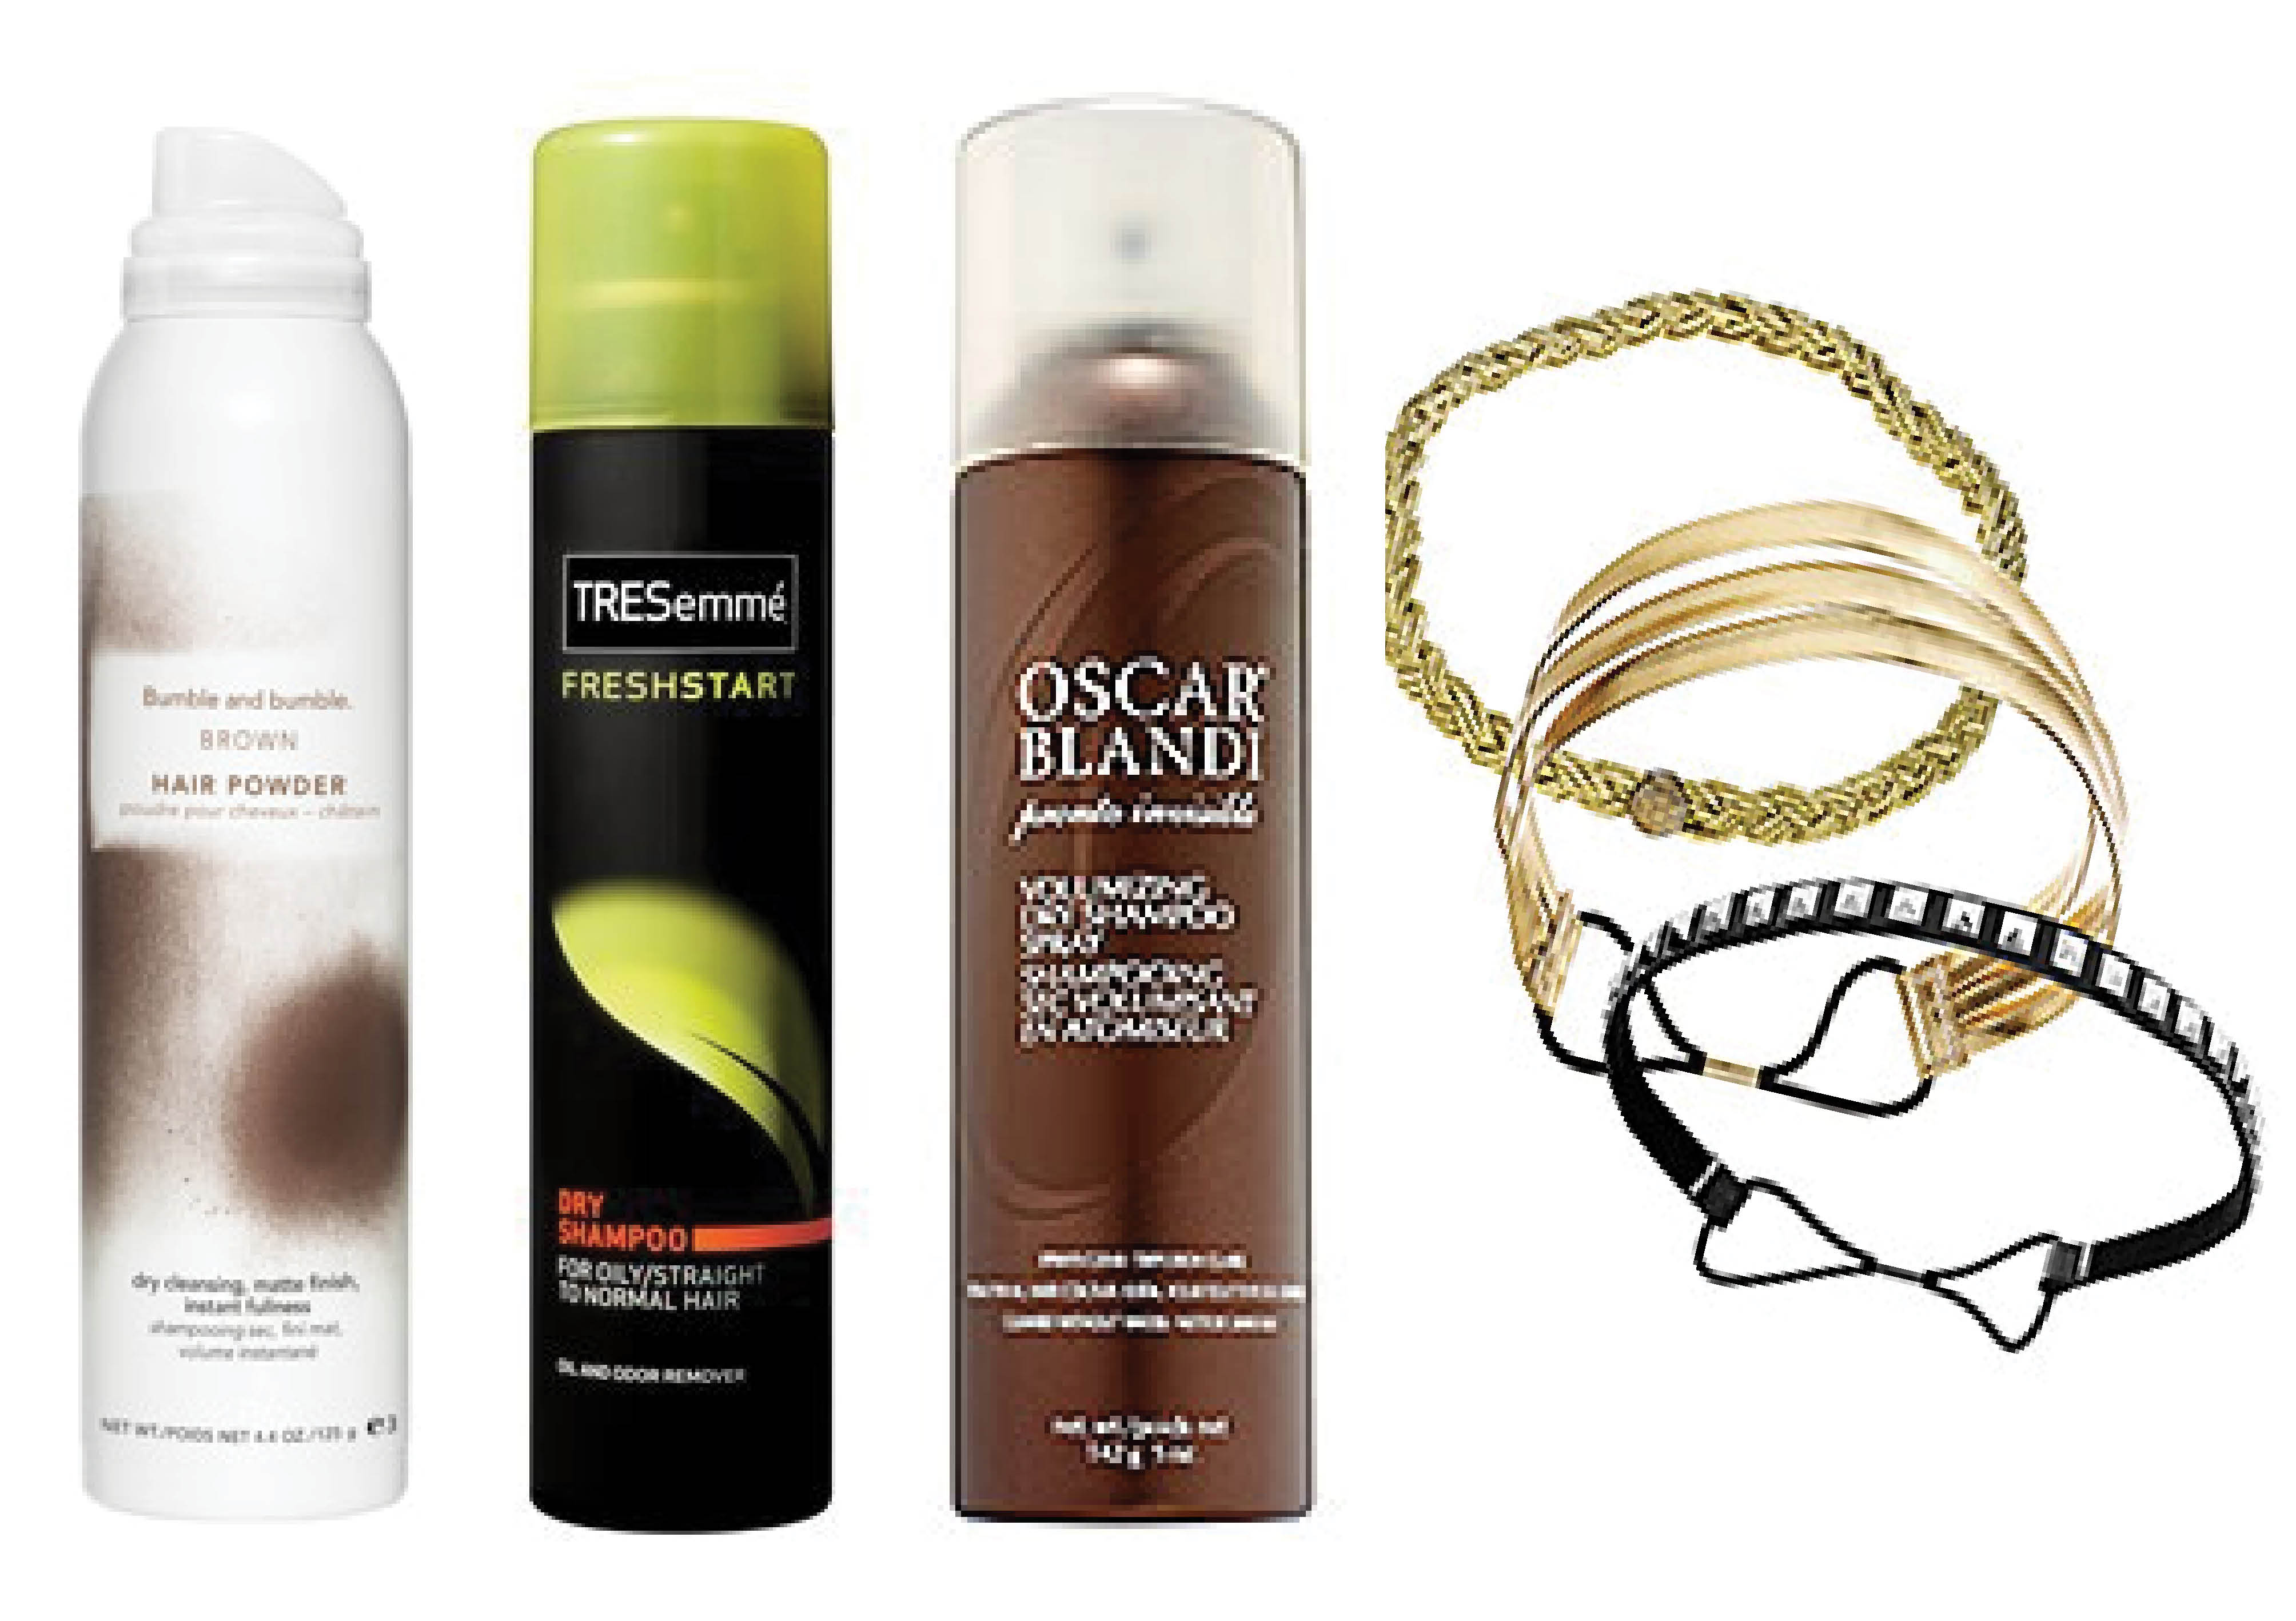 Best Products For Root Touch Ups also Oscar Blandi Salon New York 2 as well Snob Worthy Links August 23 2011 in addition Pronto Colore Ftp Oscar Blandi Pen Brown Highlighting together with B002DP75O4. on oscar blandi pronto colore root touch up and highlighting pen